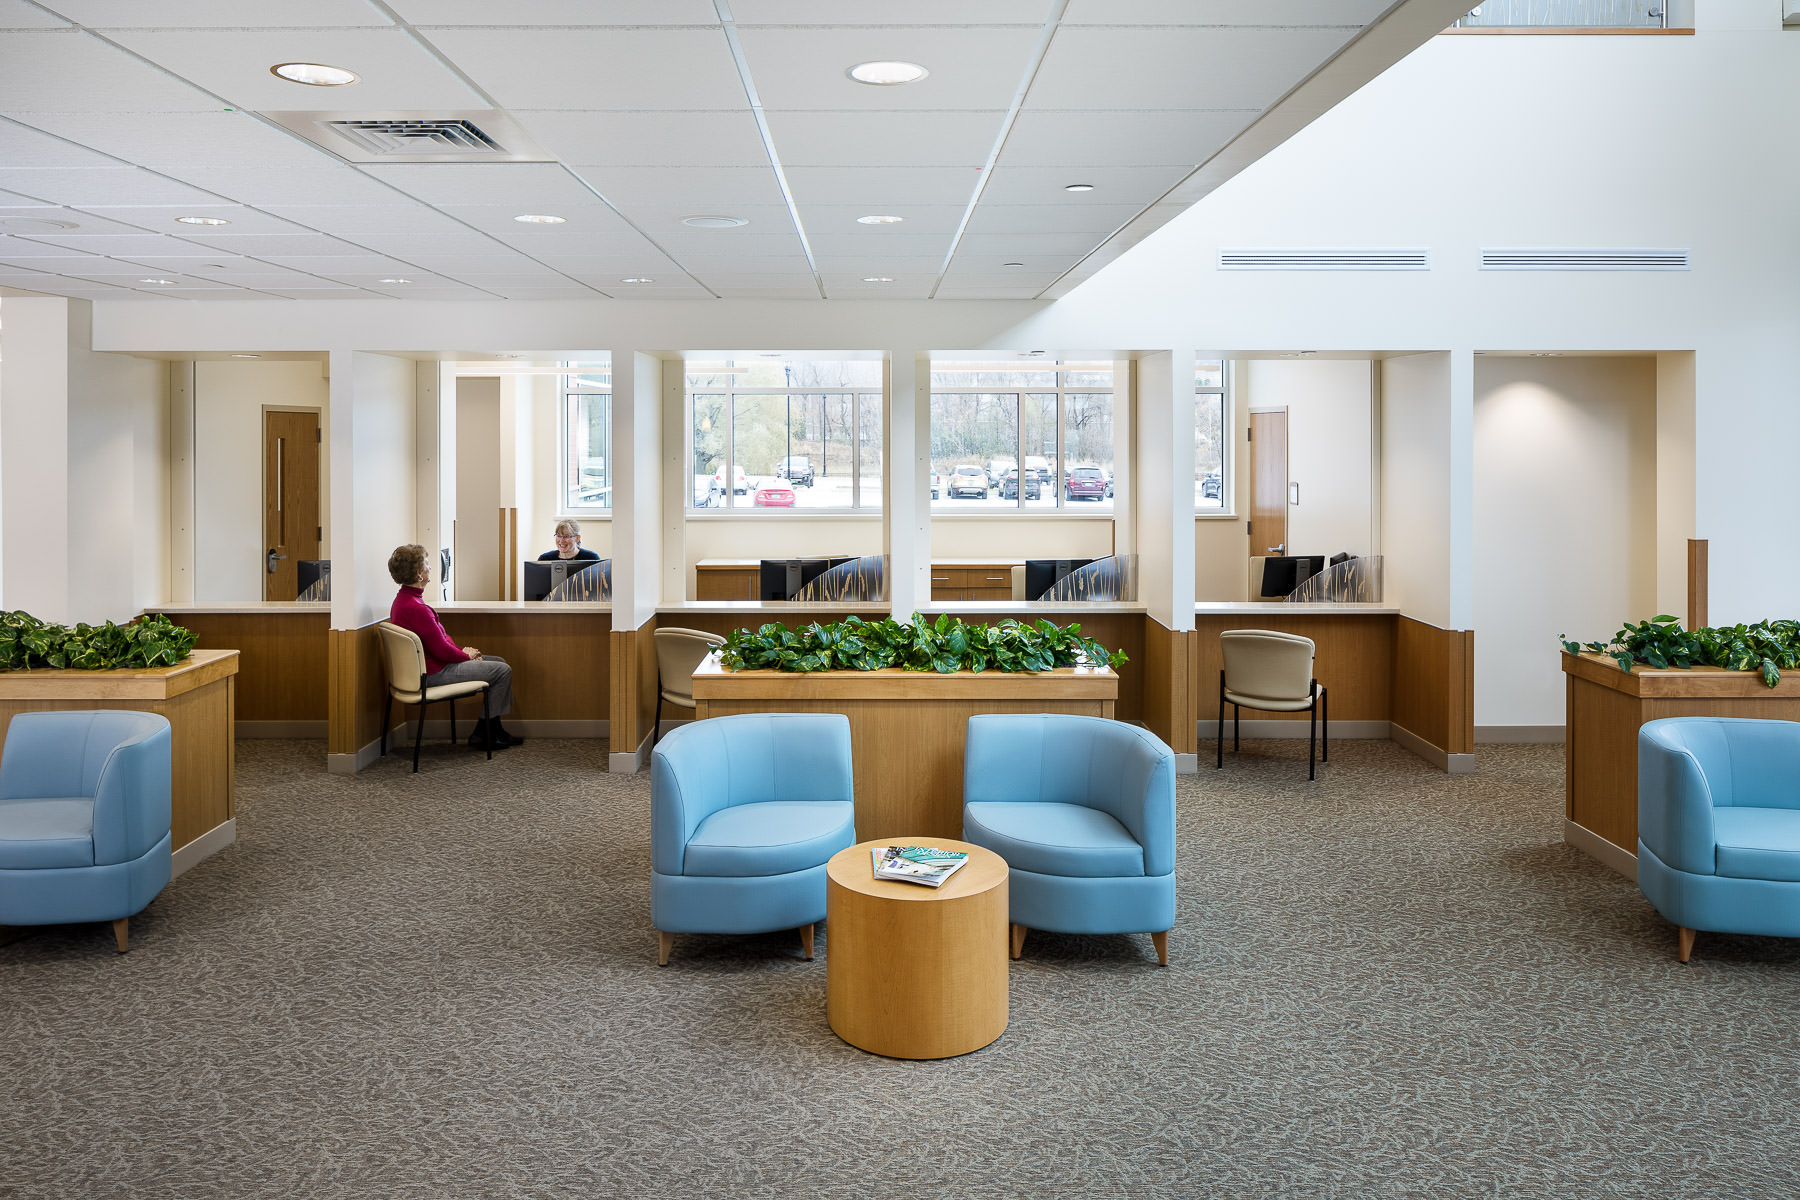 A photo of the lobby in Northwestern Medical Center's Medical Office Building in St. Albans Vermont by professional photographer Stina Booth